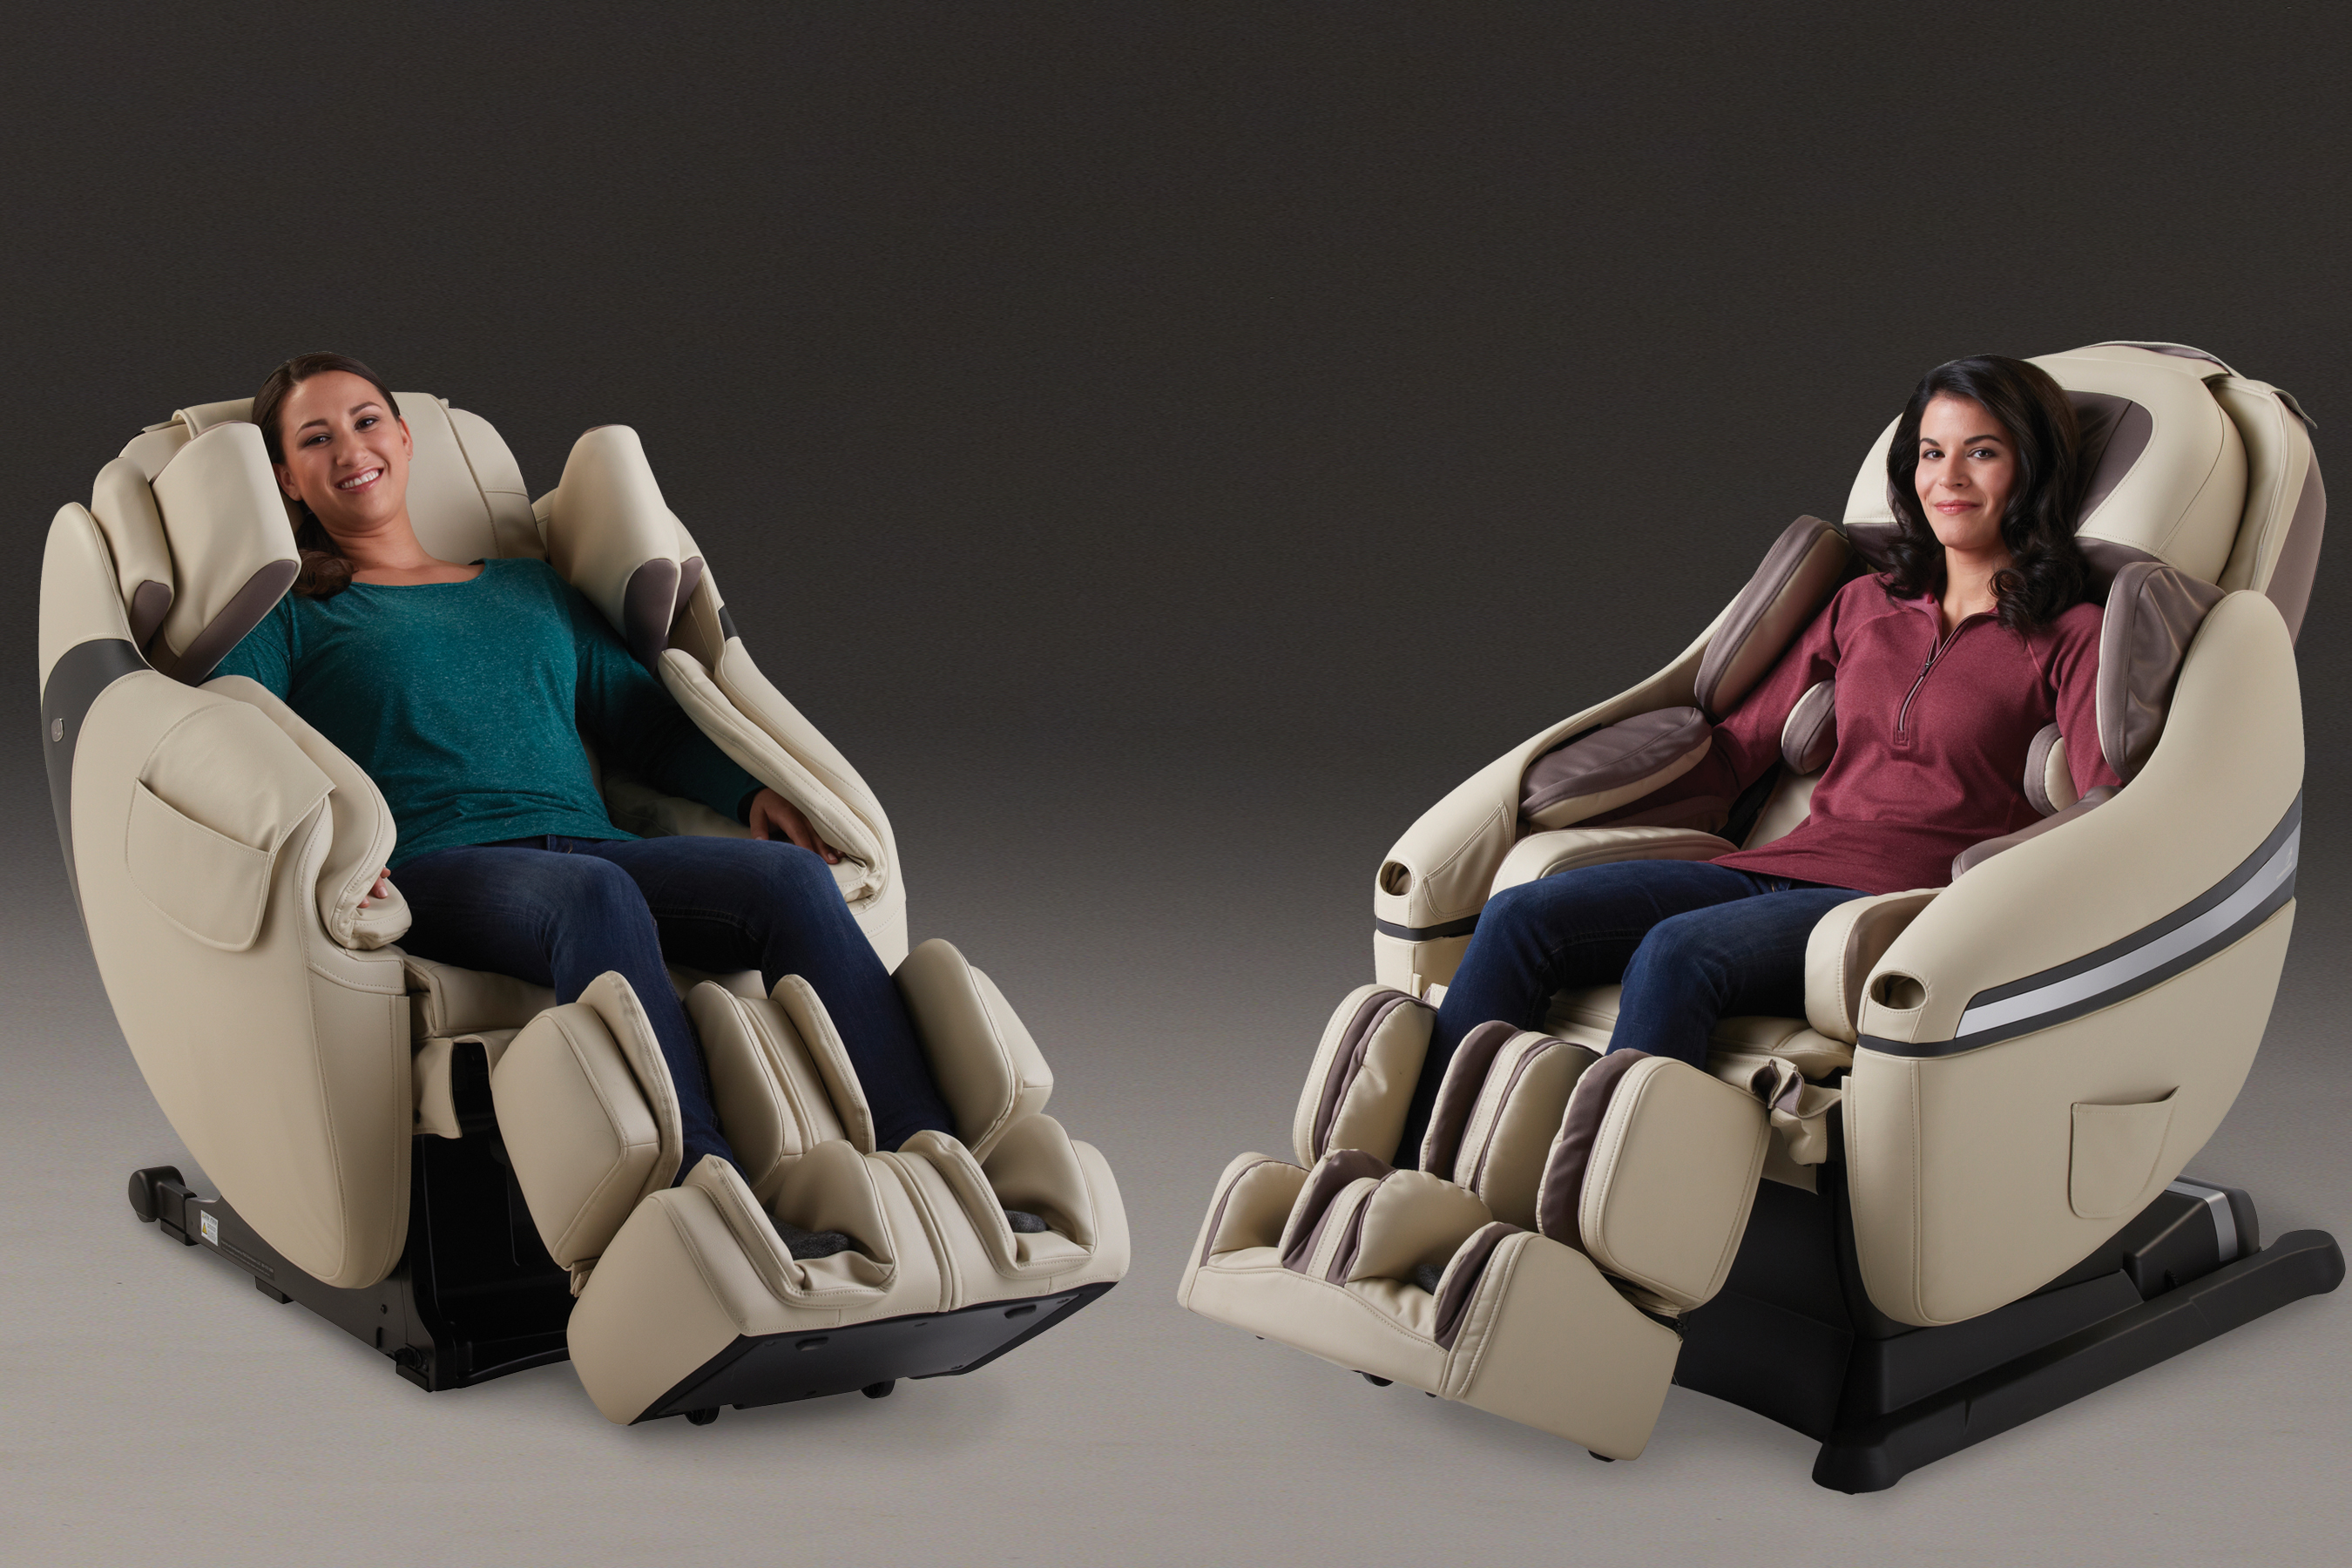 Inada Chair Ces 2016 Inada Massage Chairs News Releases